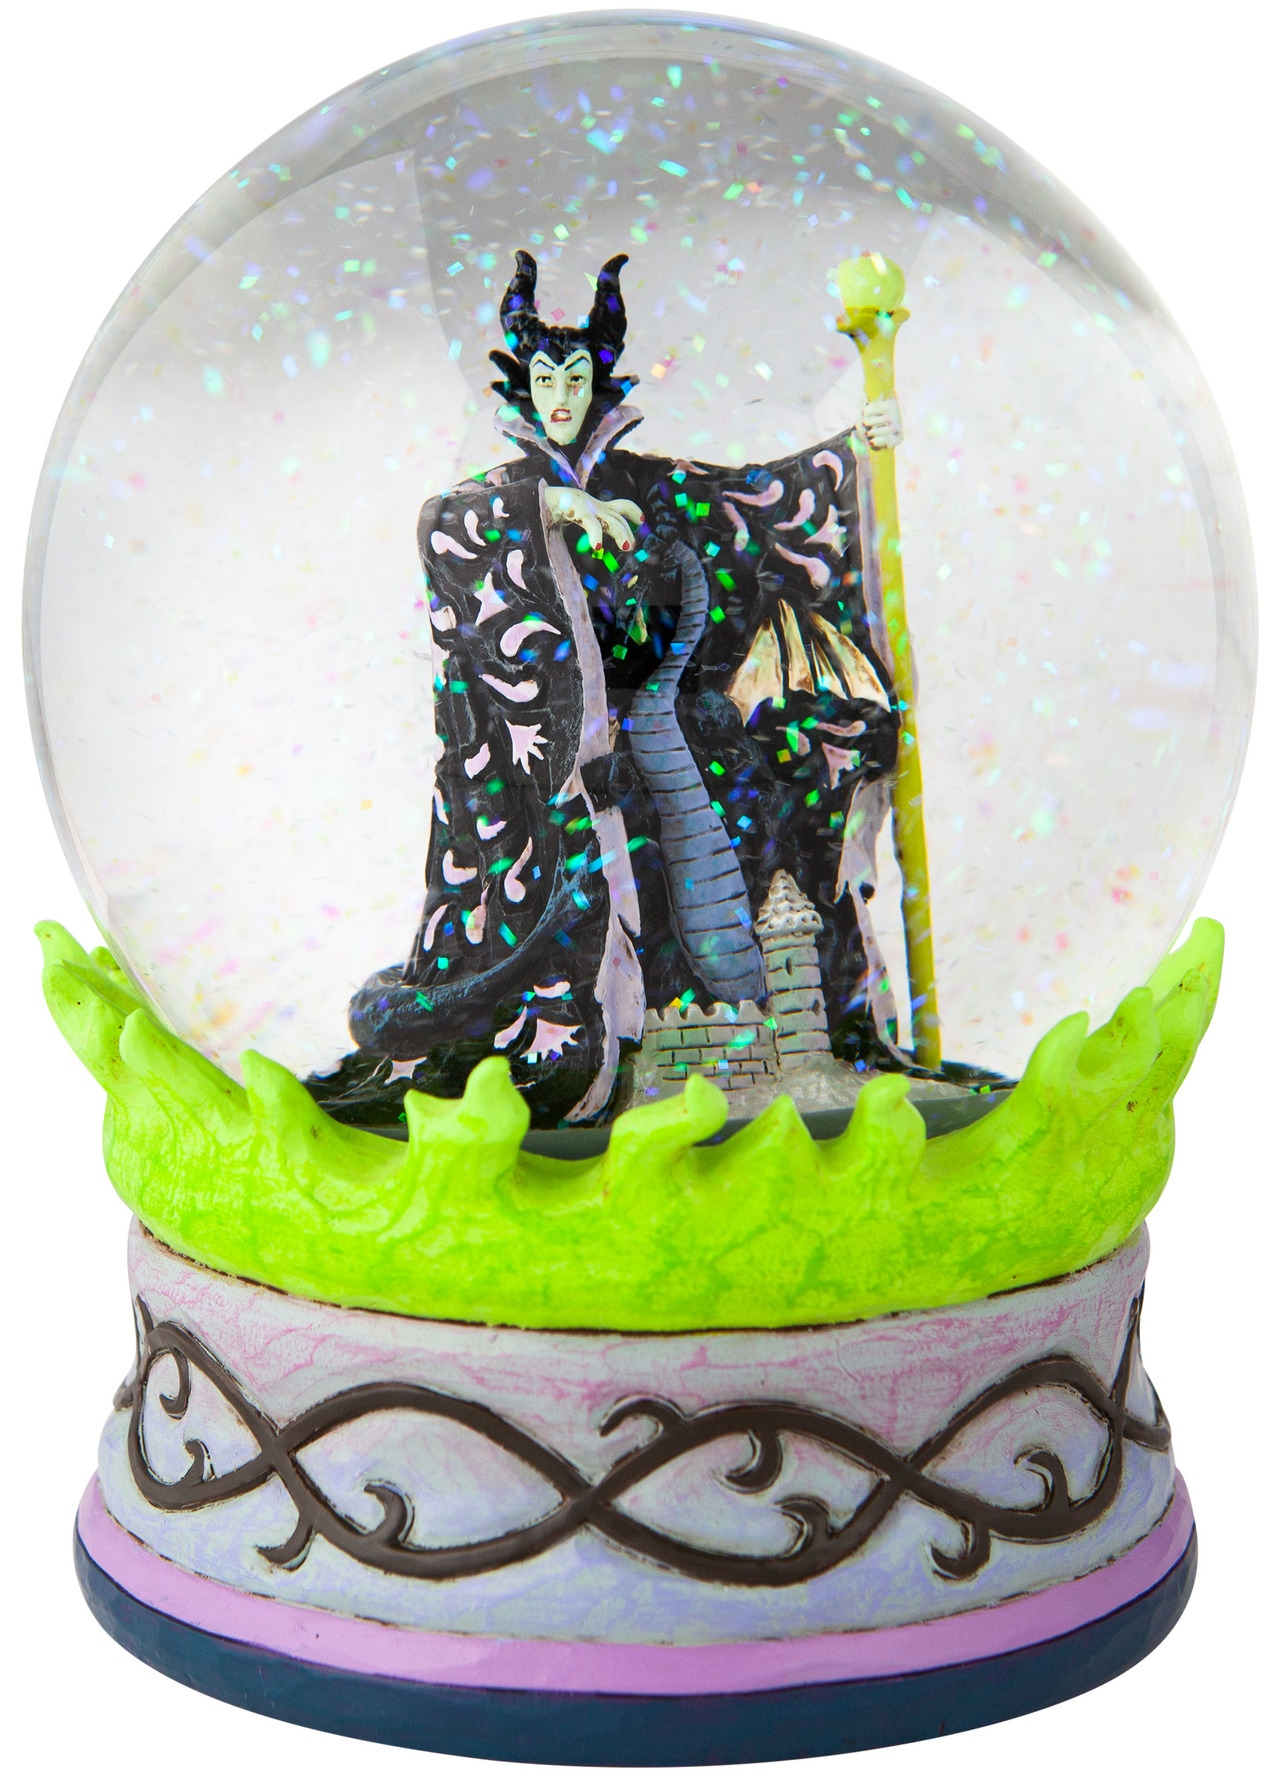 Jim Shore Disney 6007084 Maleficent Waterball